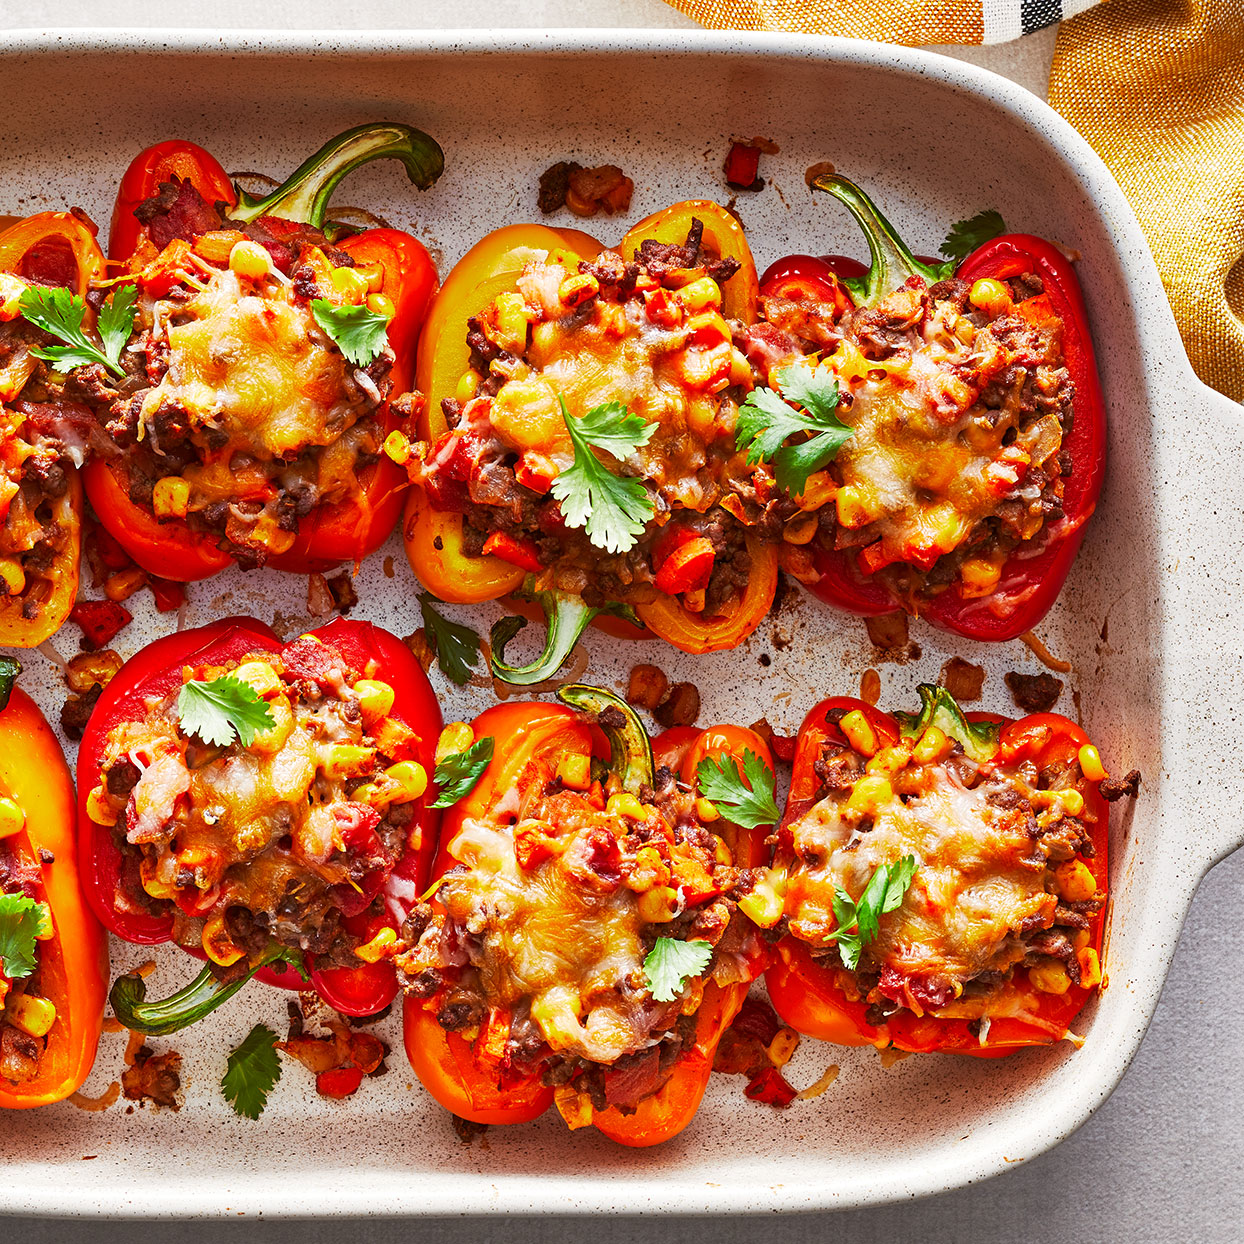 Cheesy Tex-Mex Taco Stuffed Peppers